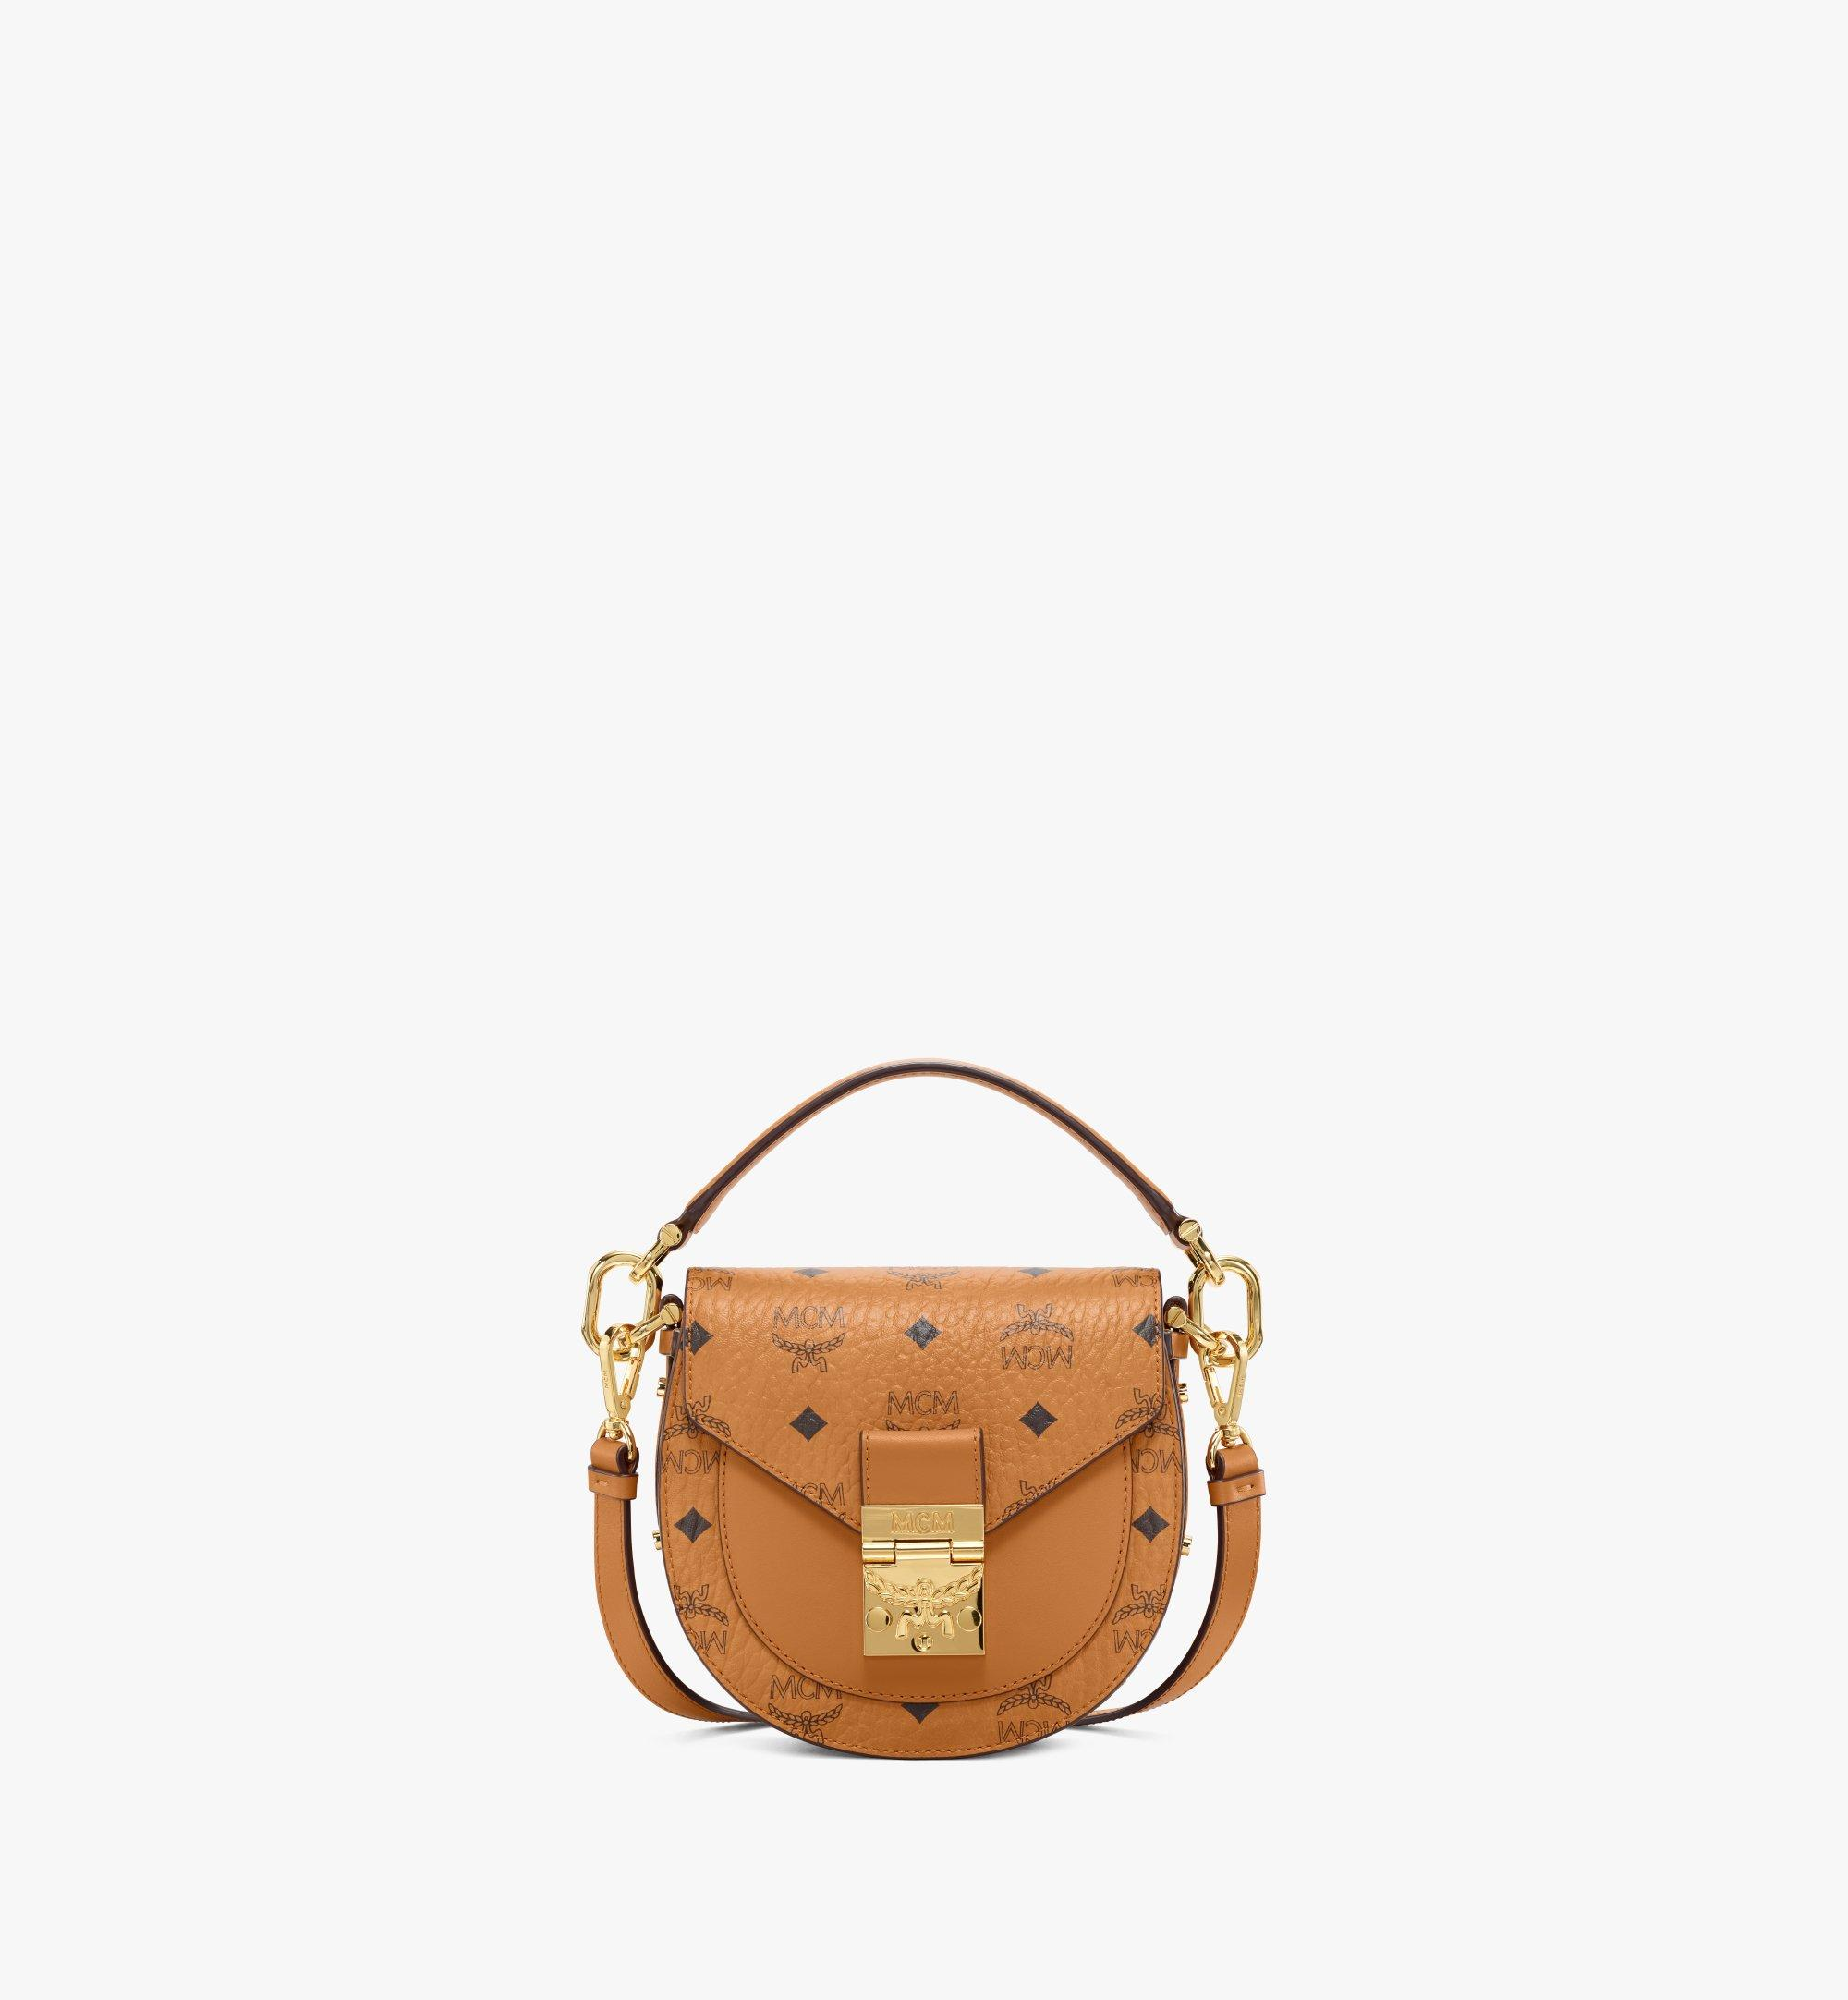 MCM Patricia Shoulder Bag in Visetos Cognac MWSAAPA02CO001 Alternate View 1